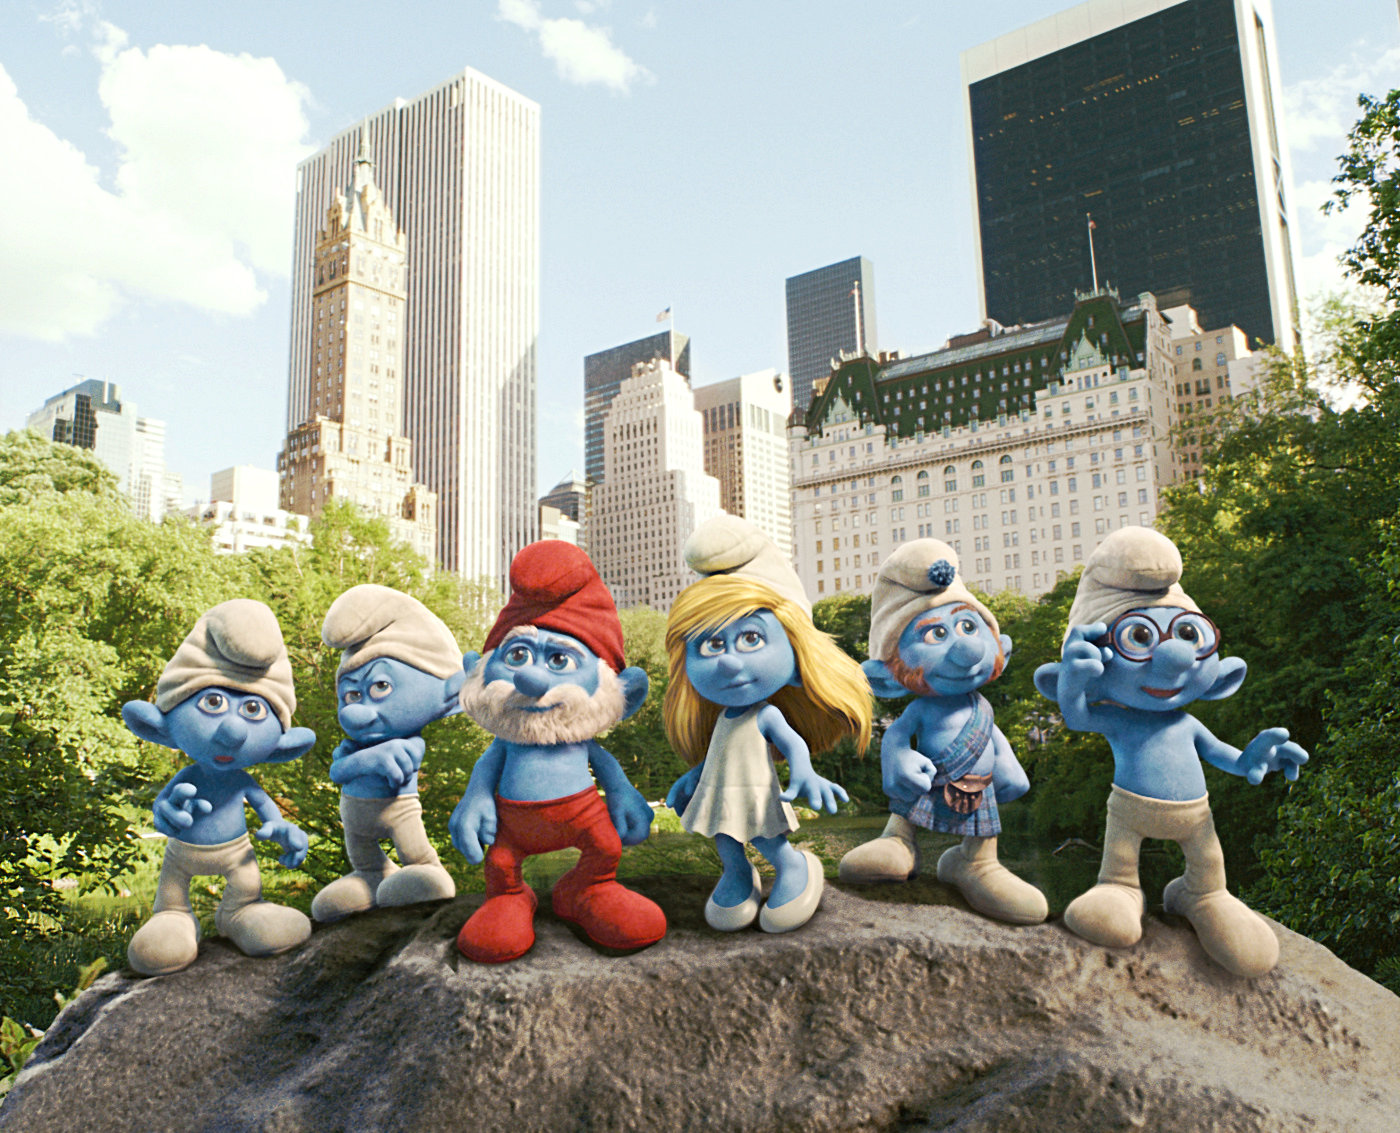 A scene from Columbia Pictures' The Smurfs (2011)